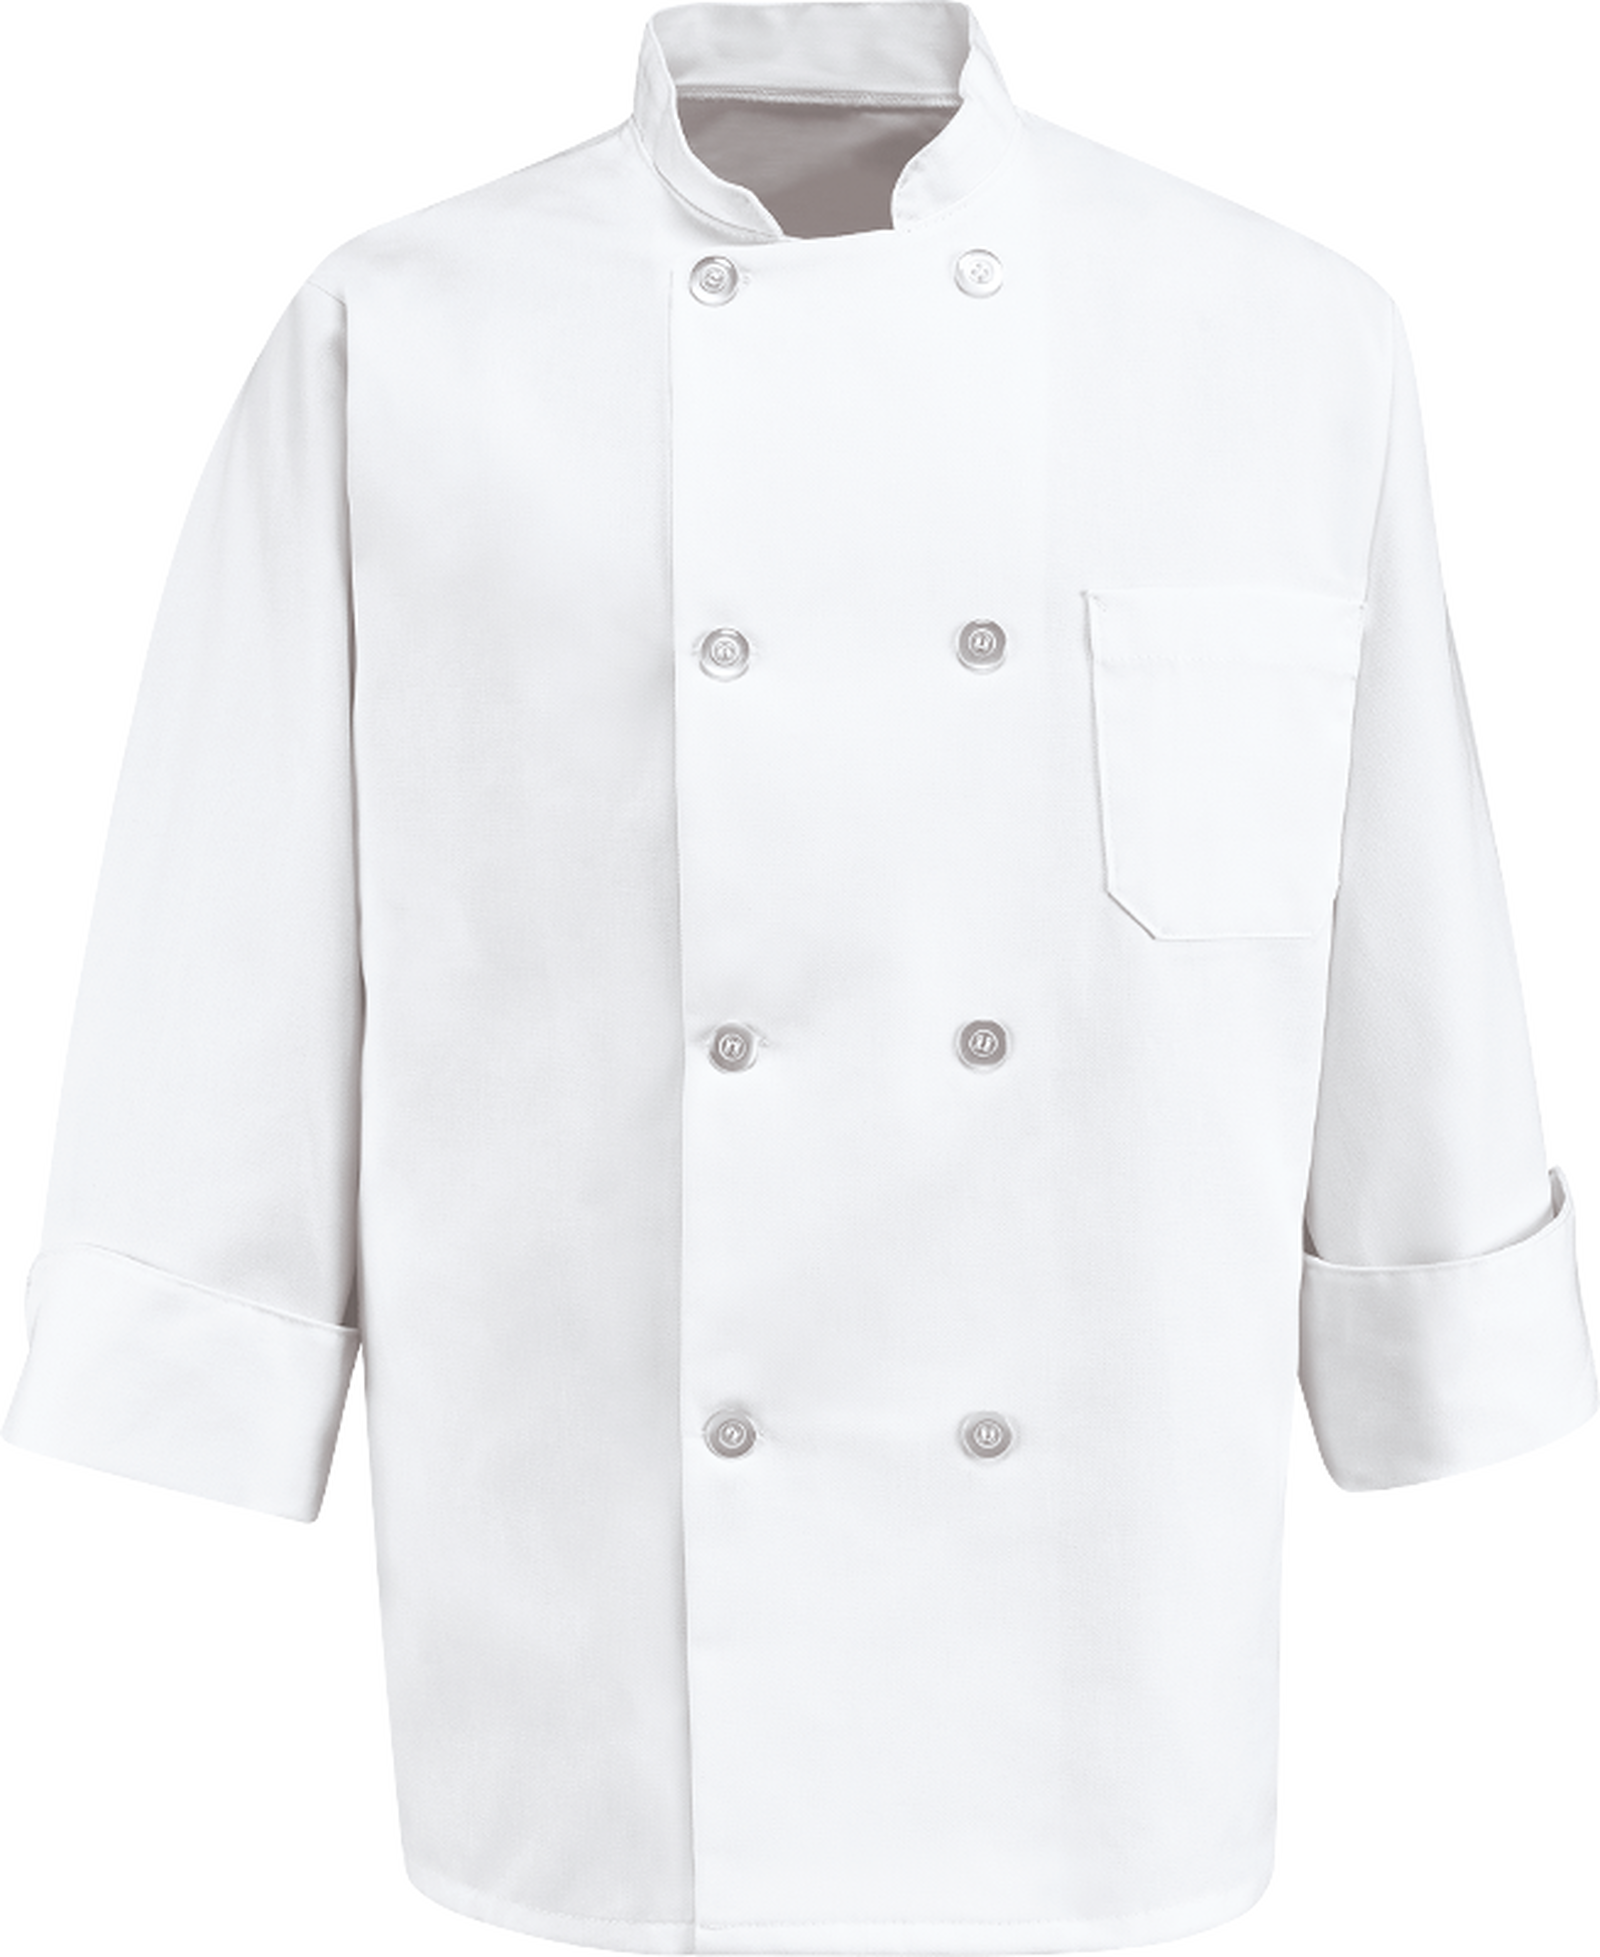 Chef Designs Eight Pearl Button Chef Coat